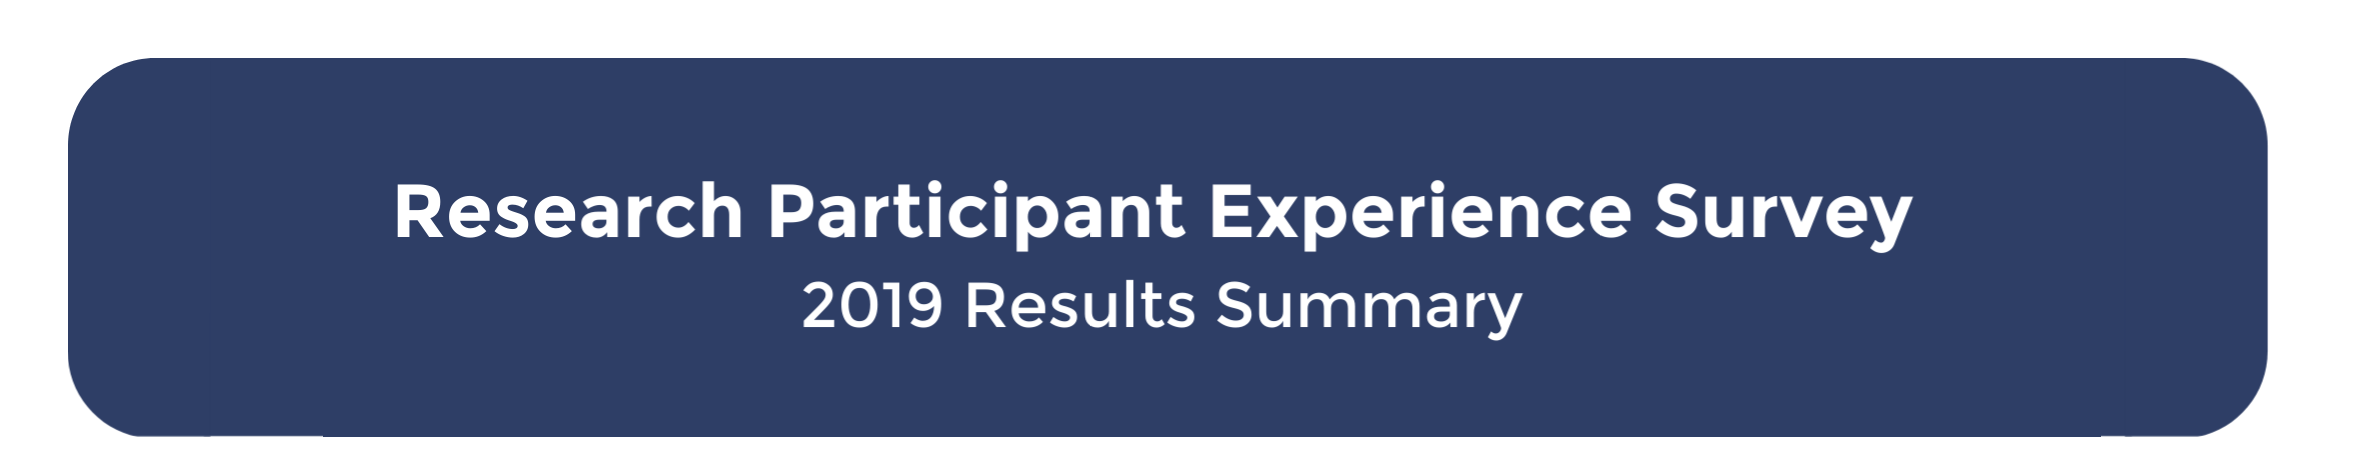 Research Participant Experience Survey, 2019 Results Summary